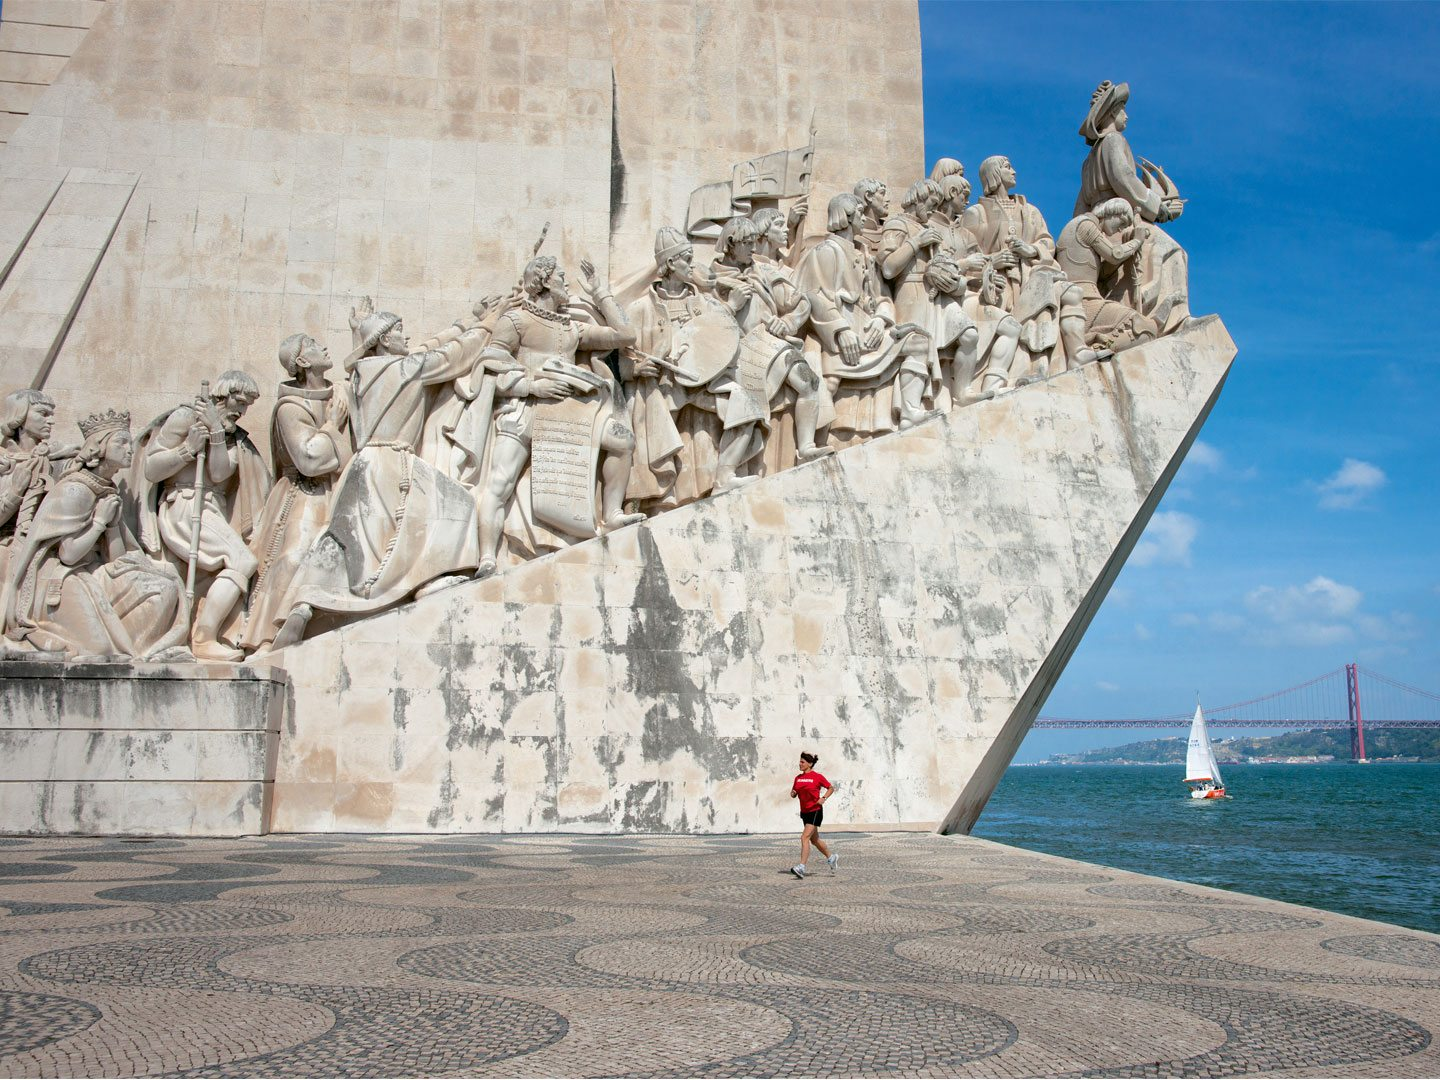 Lisbon pays tribute to Portugal's role in the age of exploration at Belém's Padrão dos Descobrimentos. Photo: Massimo Bassano